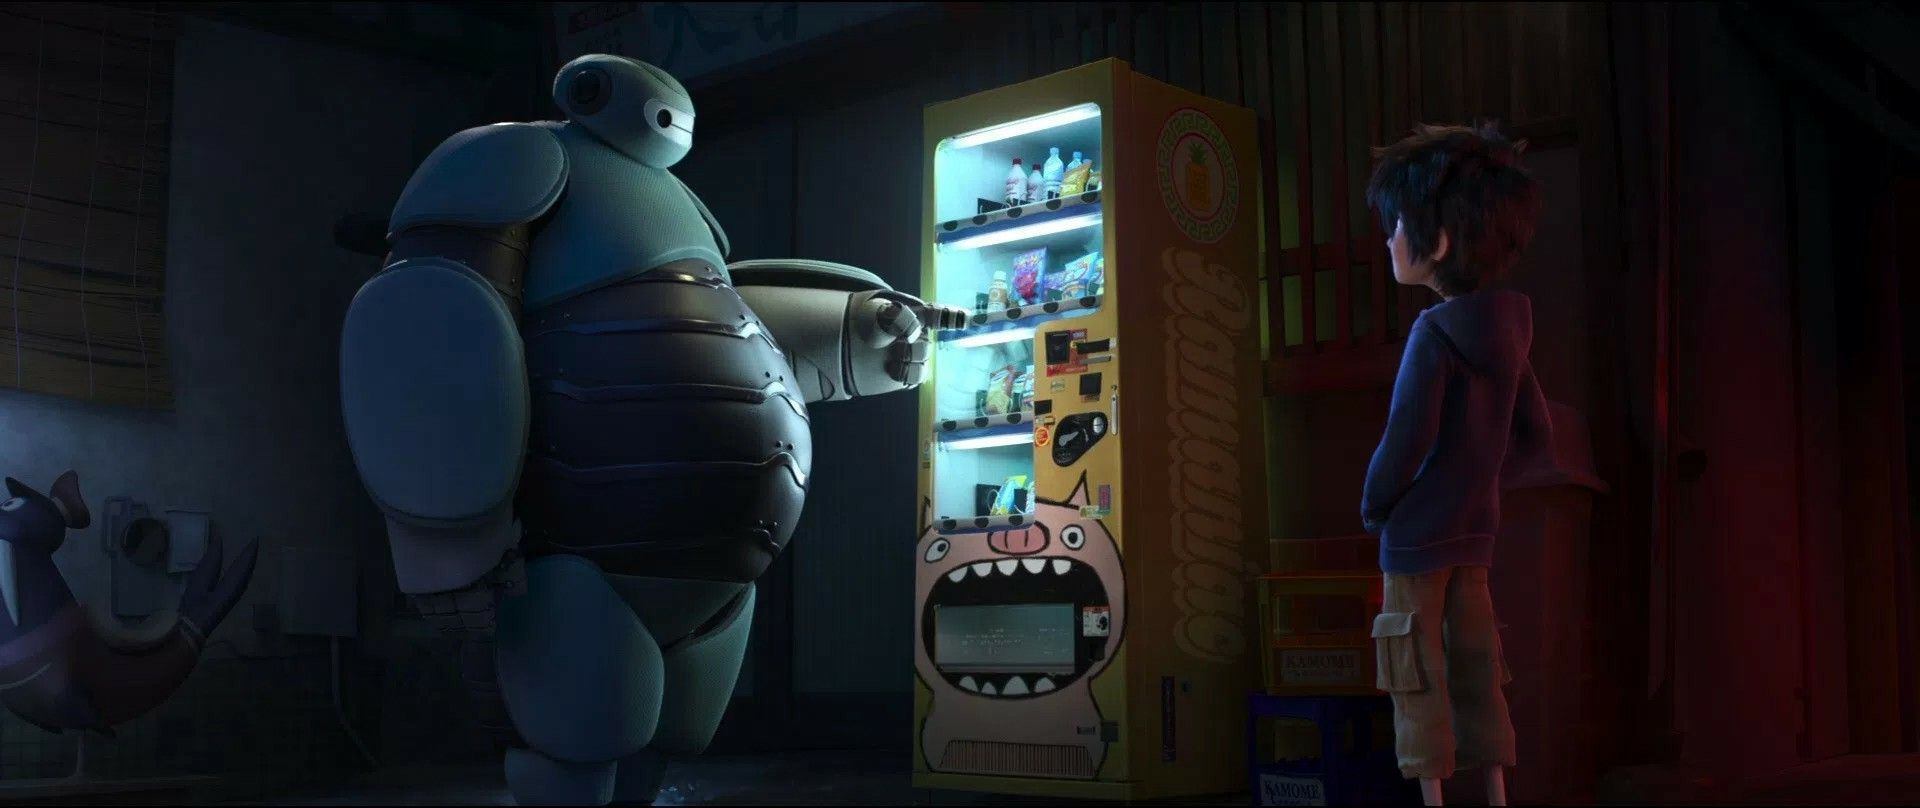 Pin by Star Lord on MOOD BOARD Big hero, Big hero 6, Hero 6